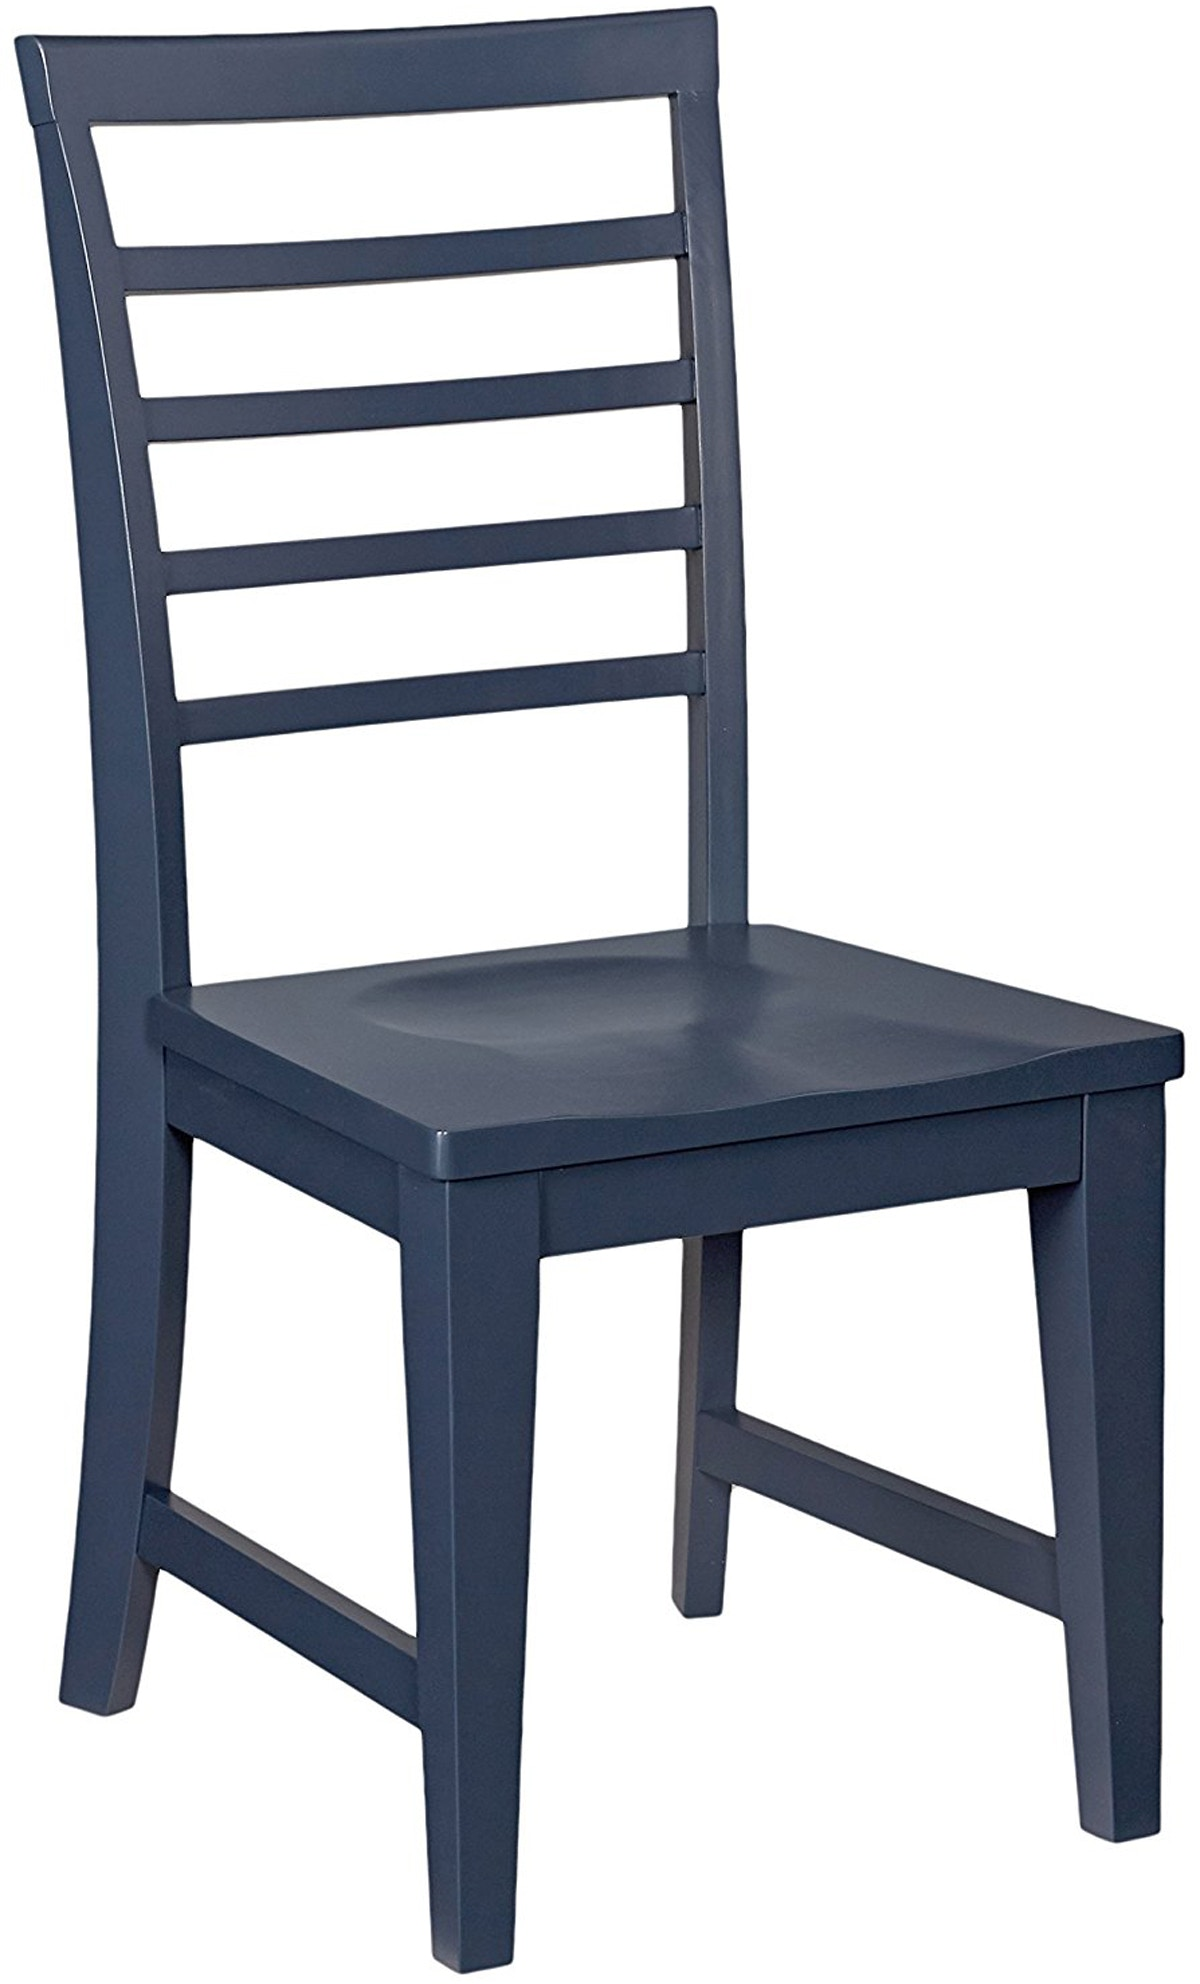 My Home Furnishings Youth Bailey Blue Desk Chair